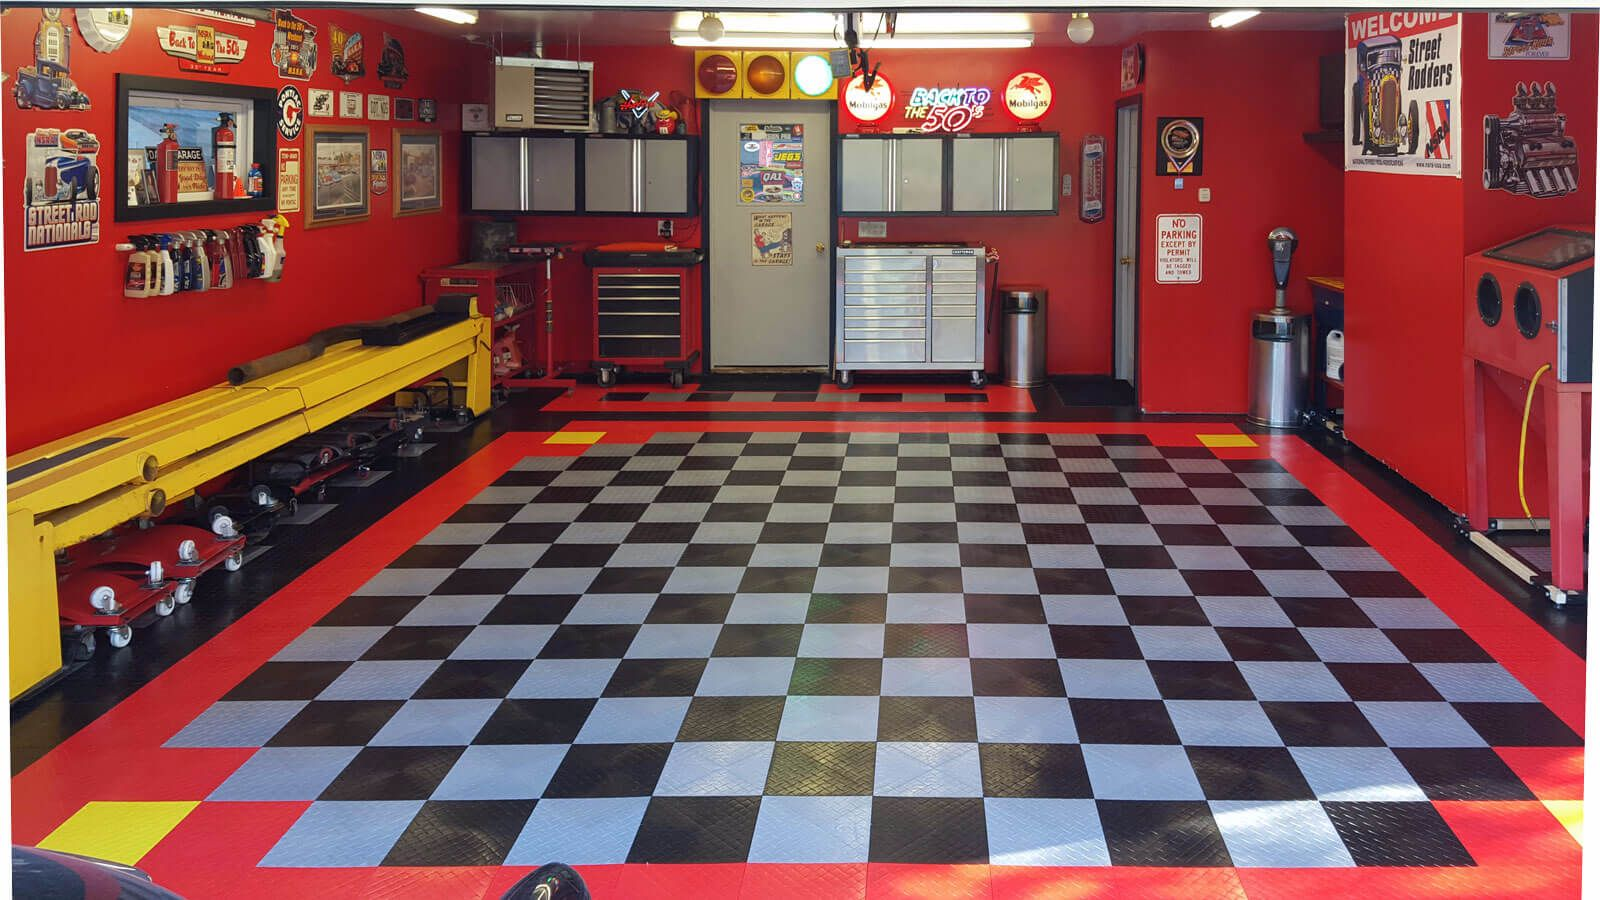 Racedeck diamond red alloy black and yellow click here for more how to choose garage flooring tiles rolls epoxy more your definitive guide to choosing the best garage flooring at the best price dailygadgetfo Images